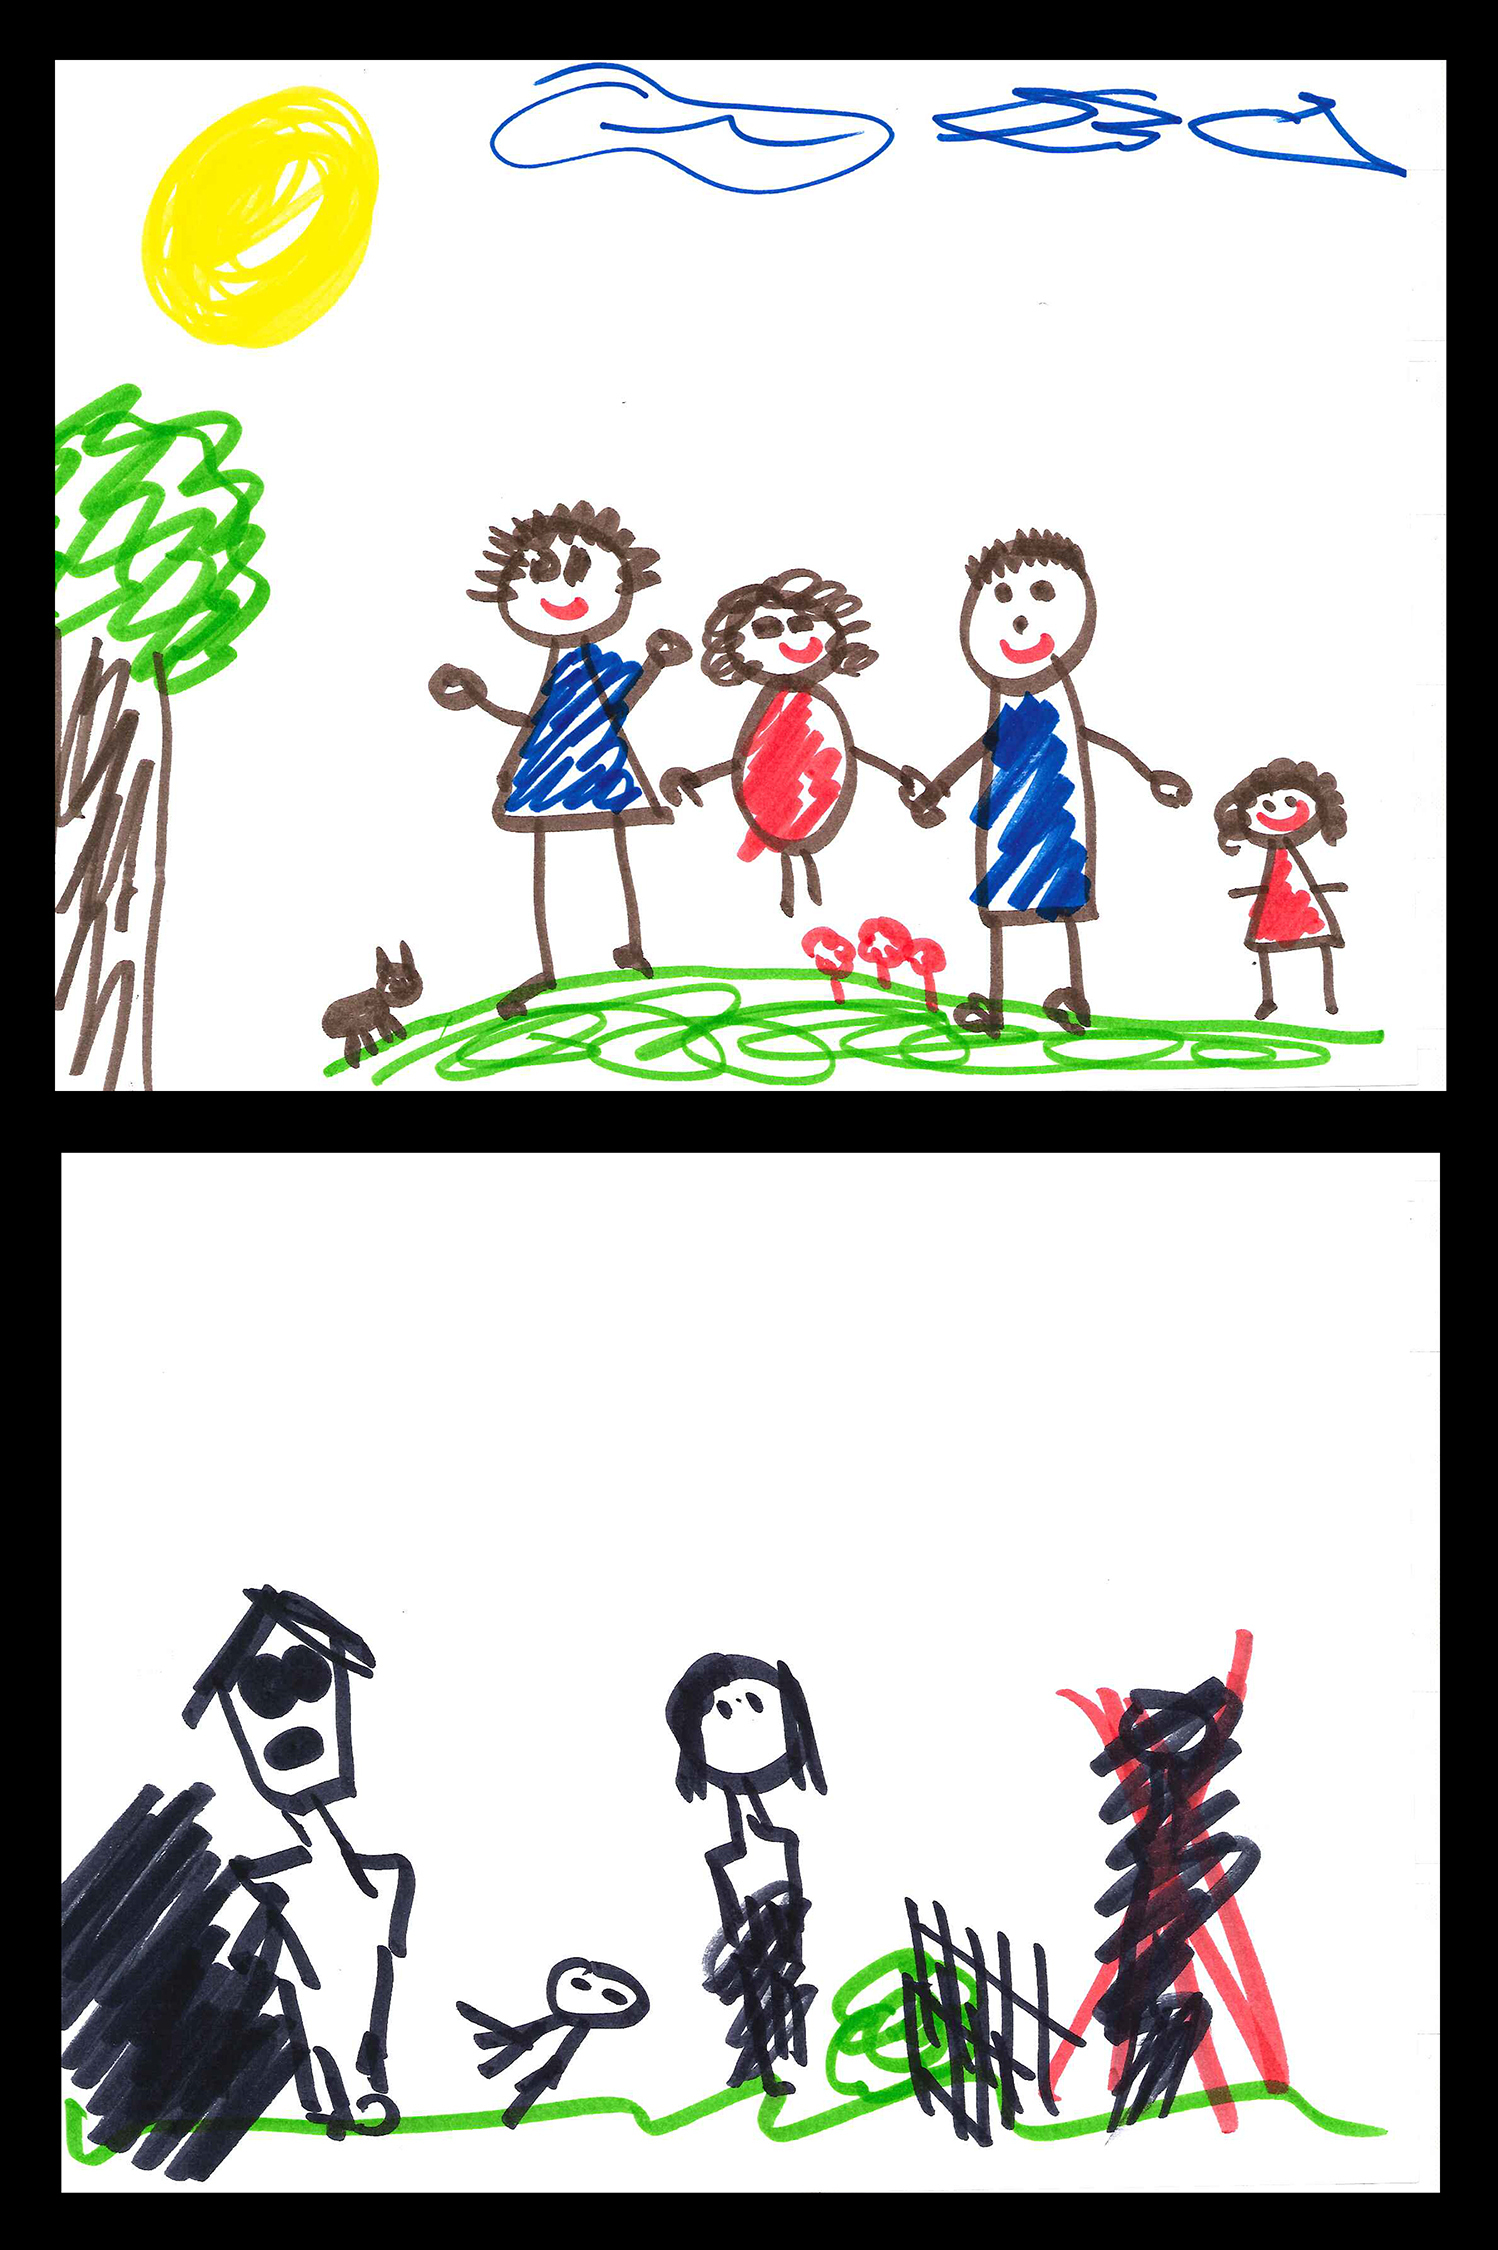 Drawing For Kids Images : drawing, images, Kids', Drawings, Speak, Volumes, About